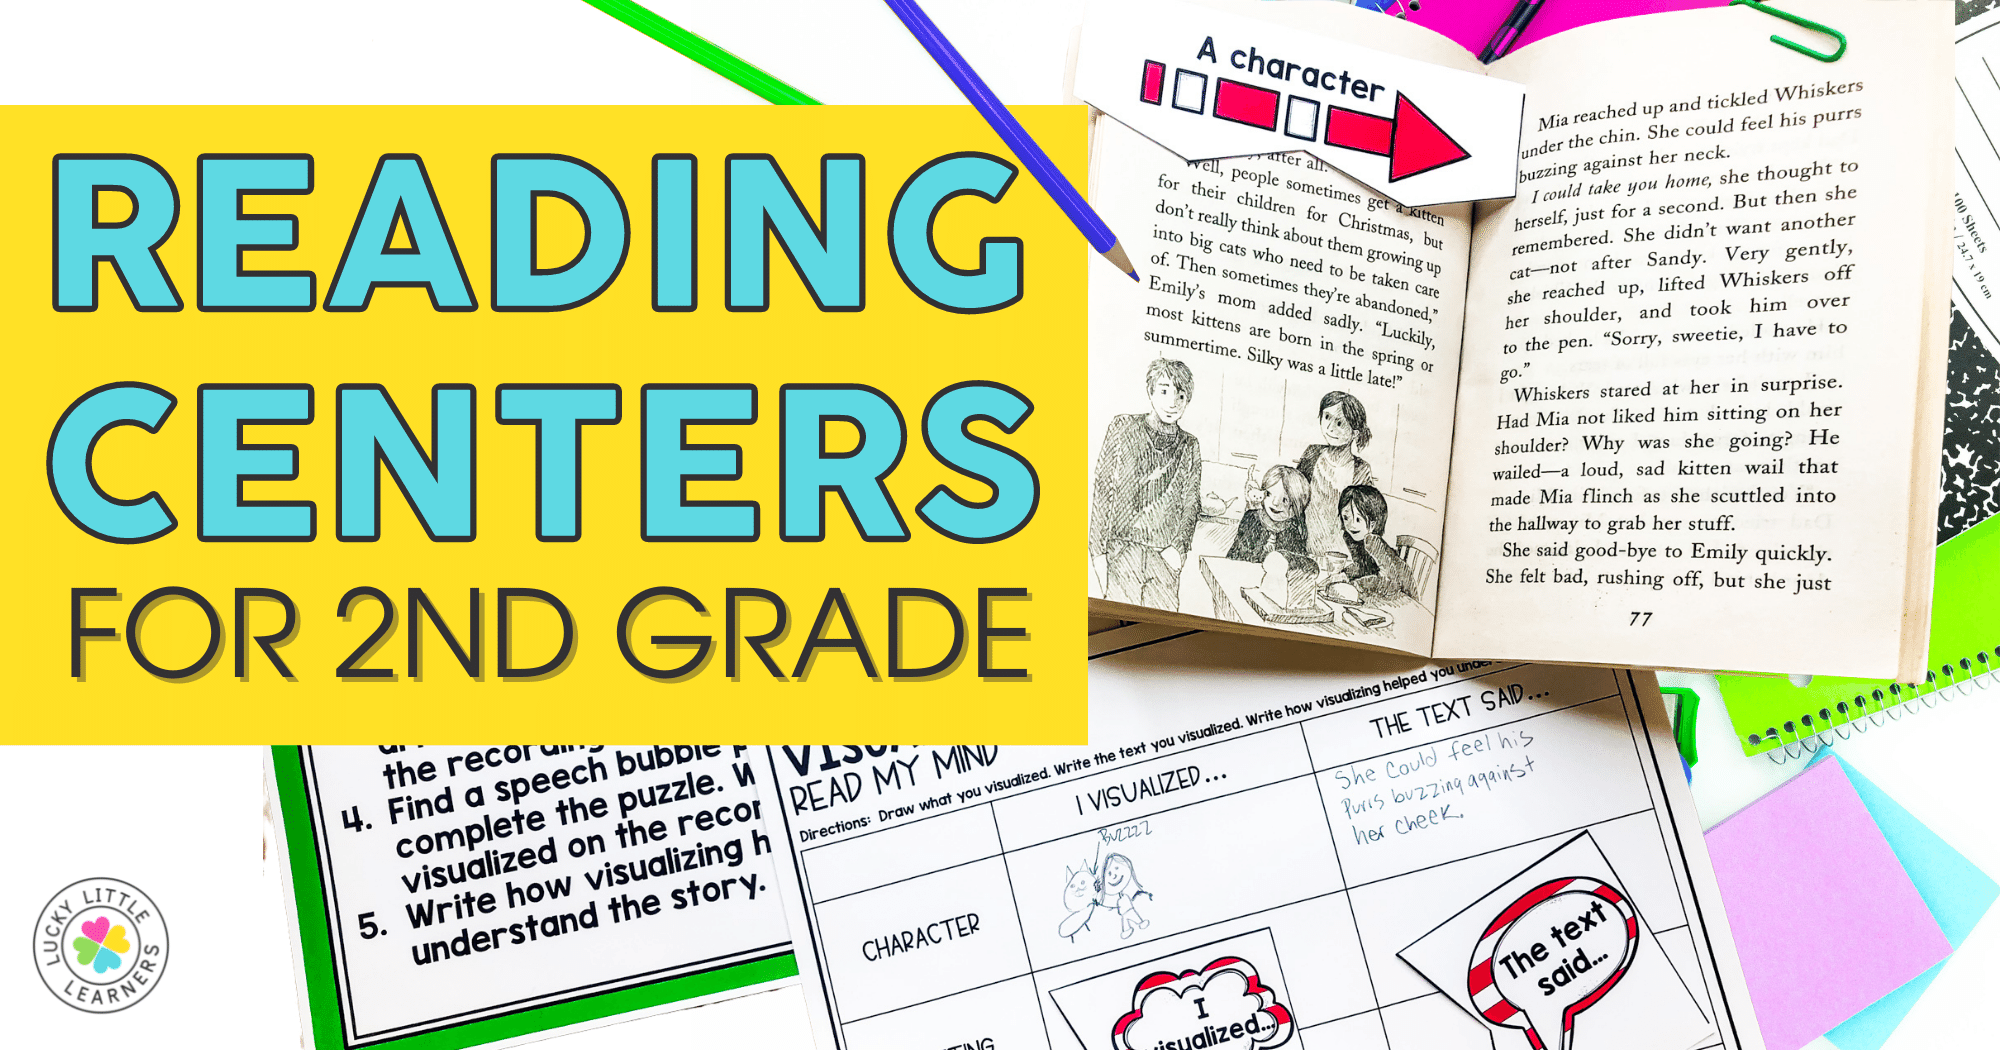 Reading Centers for 2nd Grade